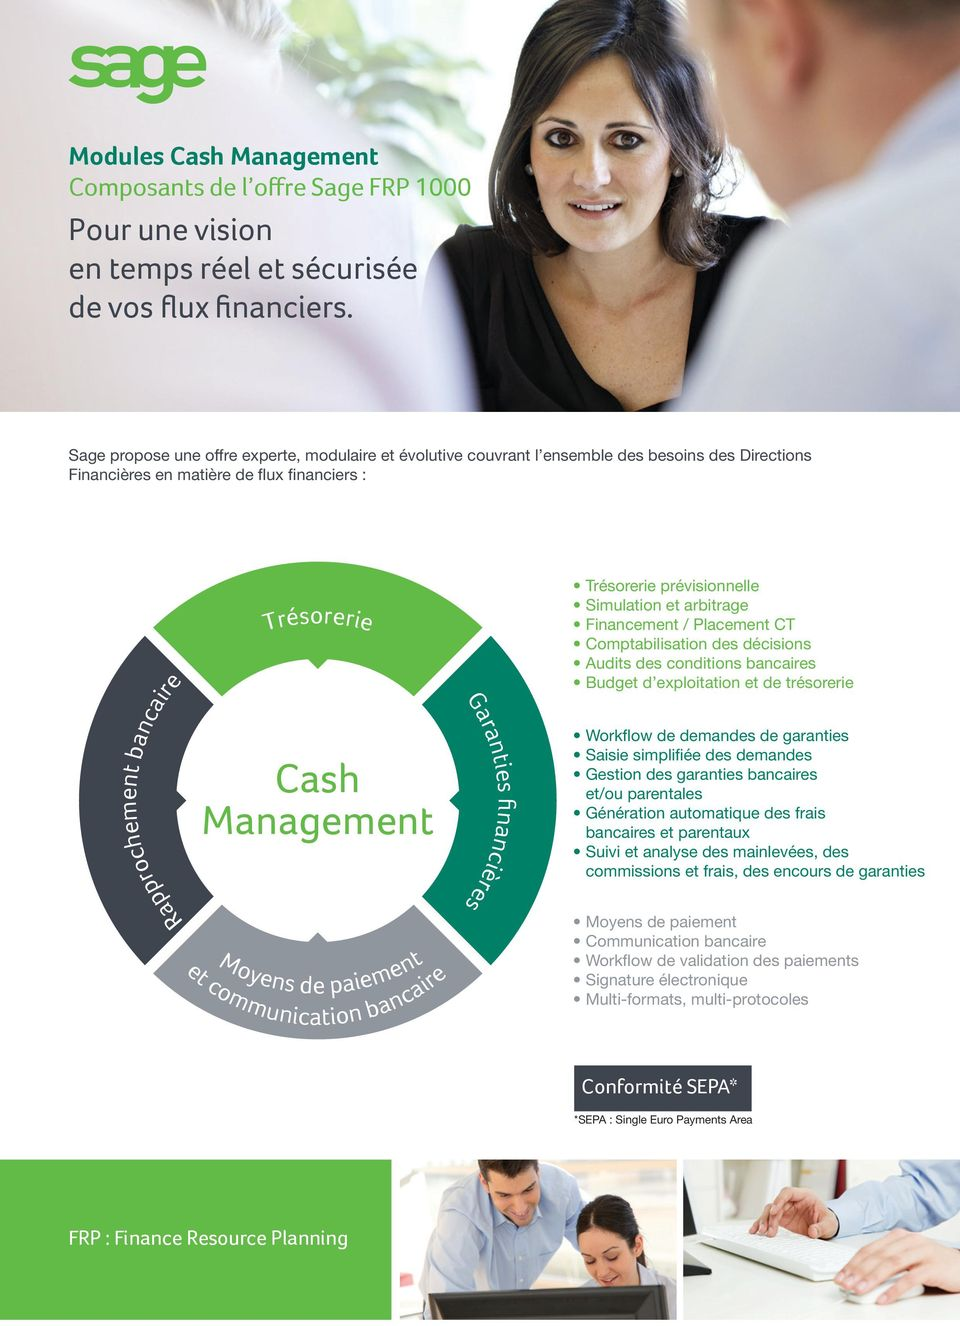 Moyens de paiement et communication bancaire inancières Garanties fi Trésorerie prévisionnelle Simulation et arbitrage Financement / Placement CT Comptabilisation des décisions Audits des conditions